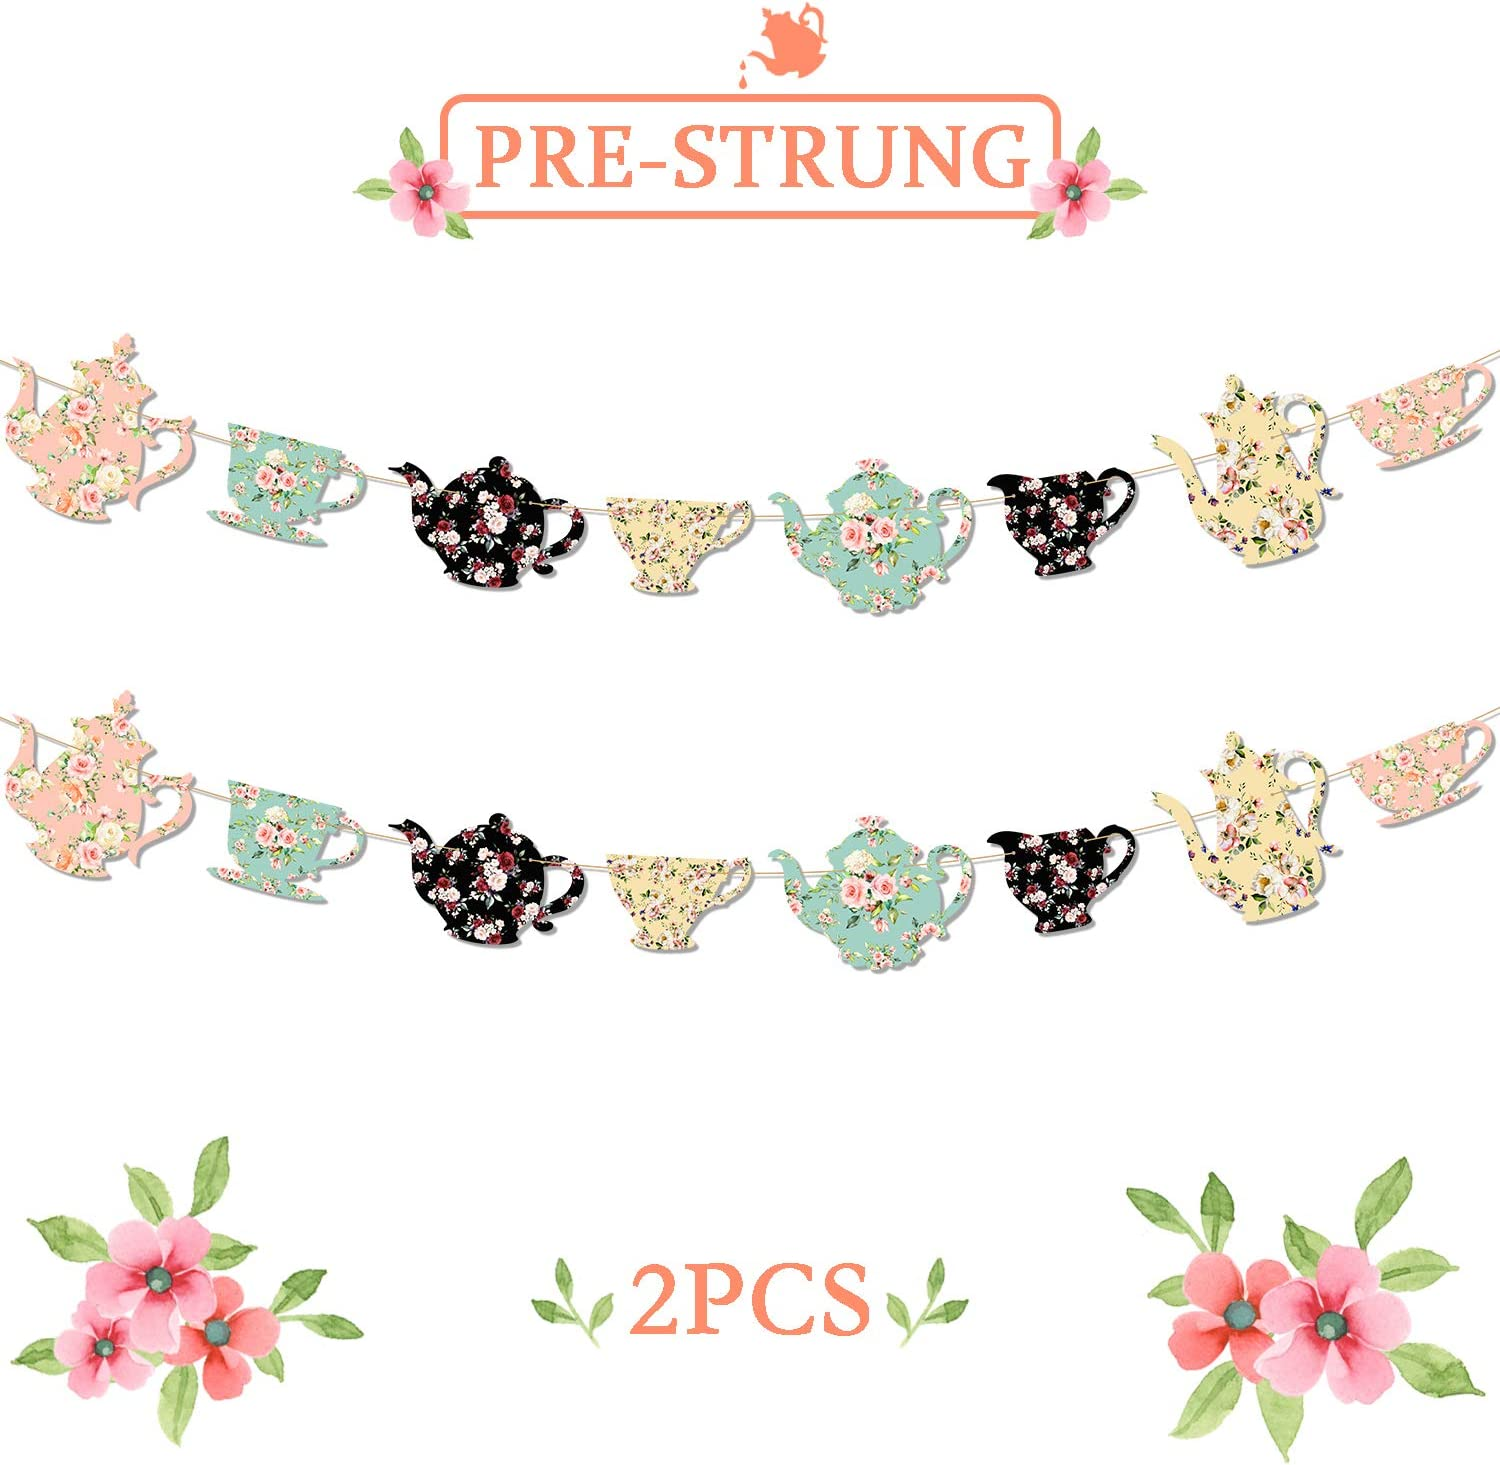 Teapots And Teacups Tea Party Banner Bridal Shower Baby Shower Girls Birthday Ideas Floral Garland Traditional English Afternoon Backyard Garden Flower Decor Totally 9Ft Long-NO DIY Required